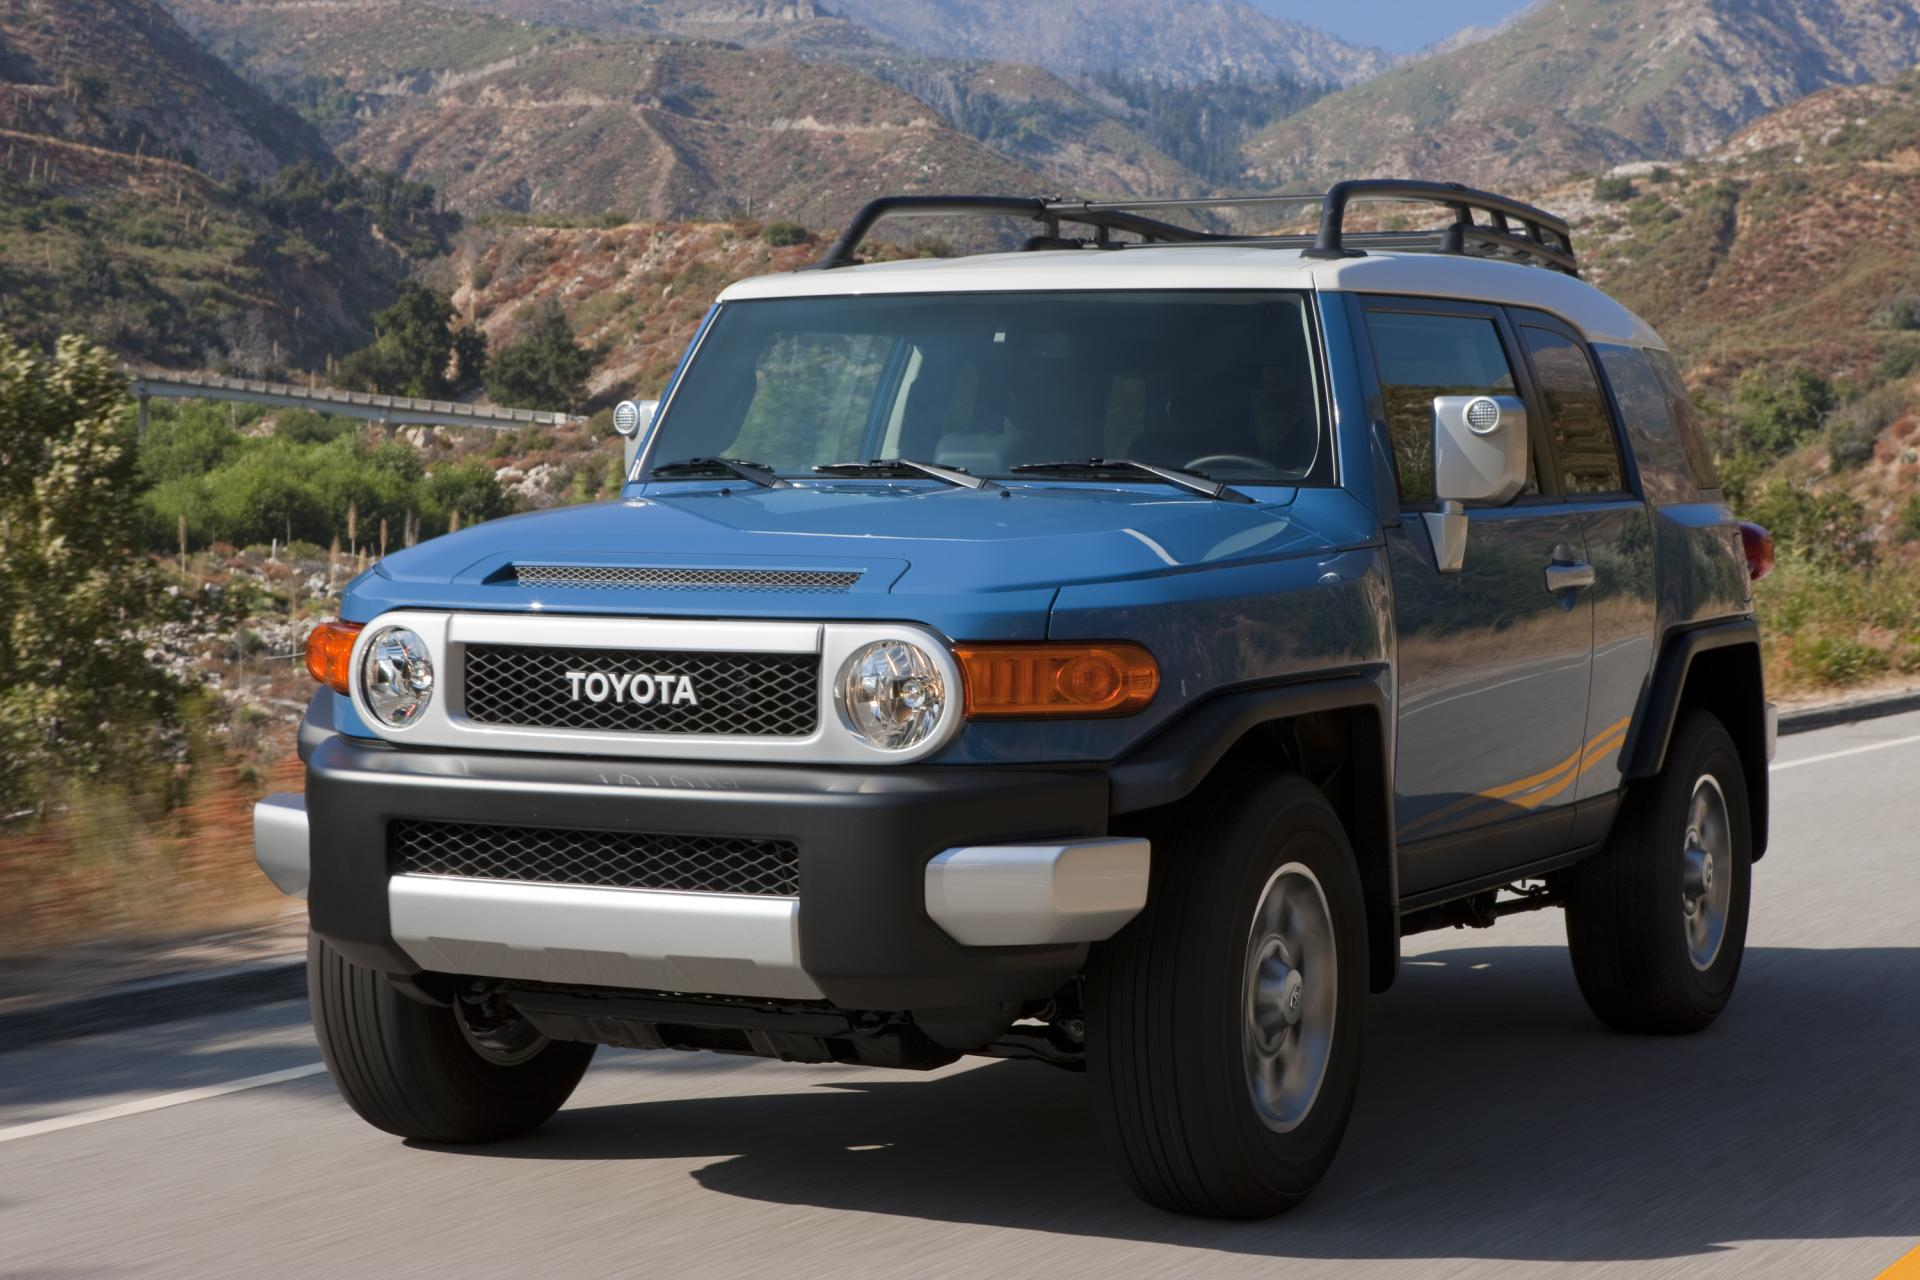 2019 Toyota FJ Cruiser Concept photo - 6